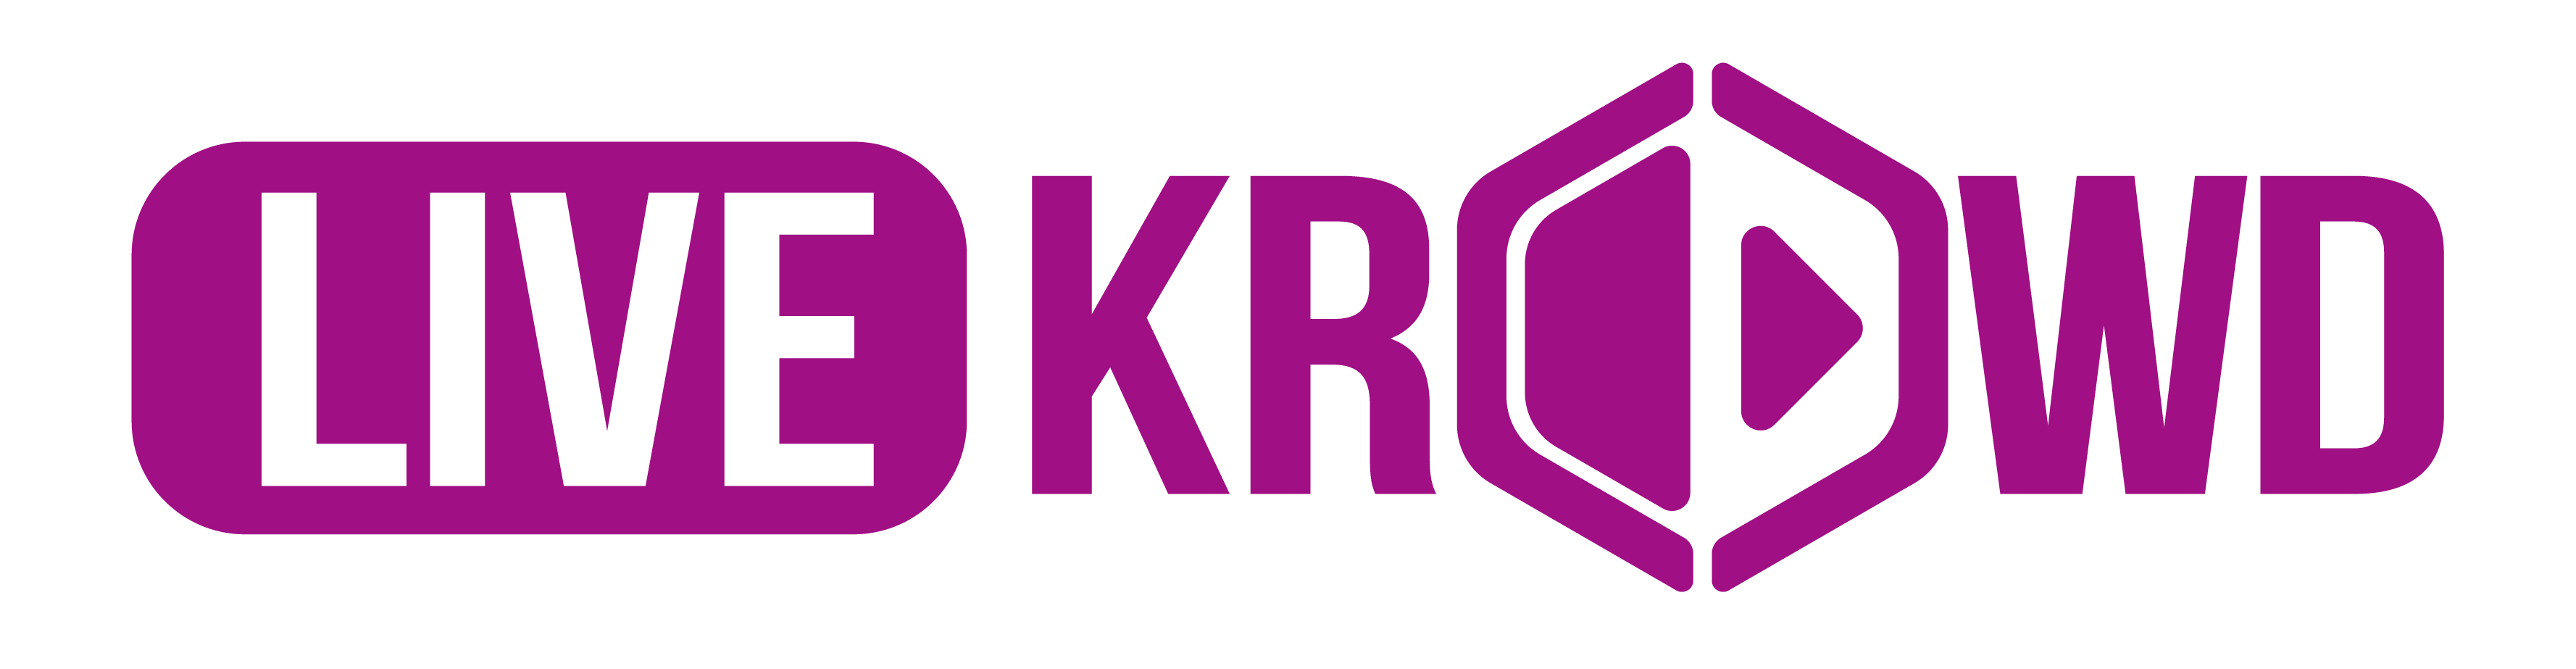 LiveKrowd – The Site to Book Online Singers, Musicians & Artists for Live Streaming